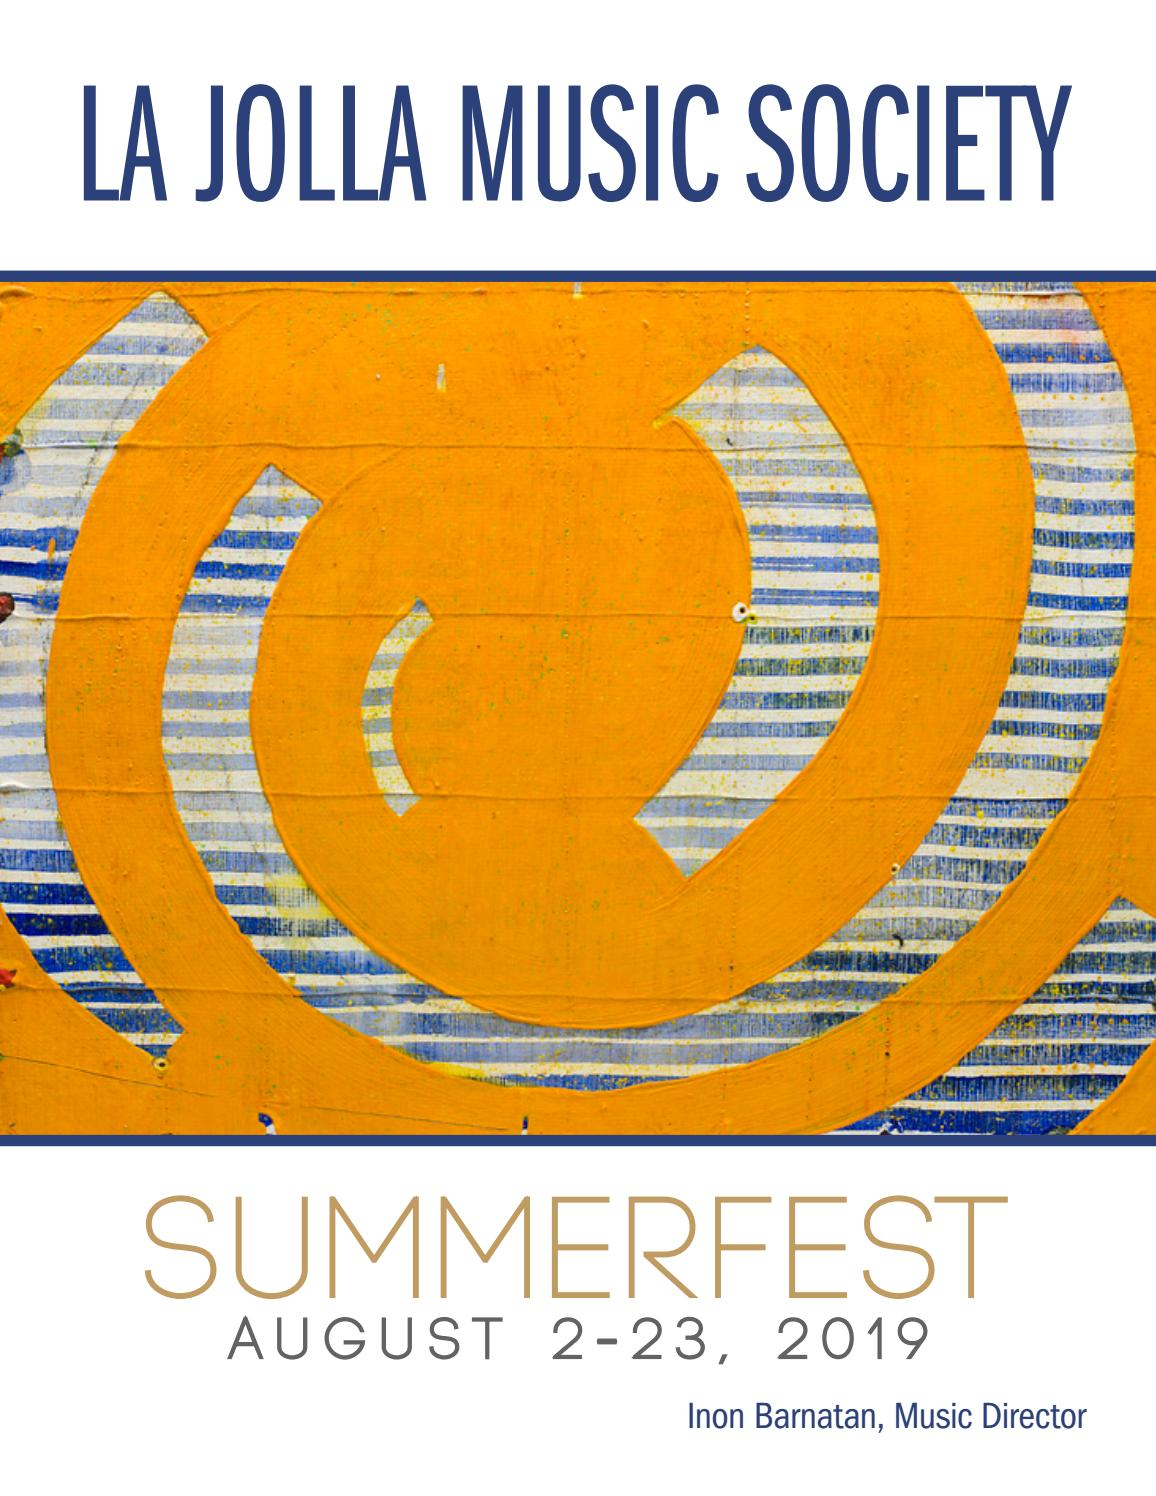 SummerFest 2019 Program book by La Jolla Music Society - issuu